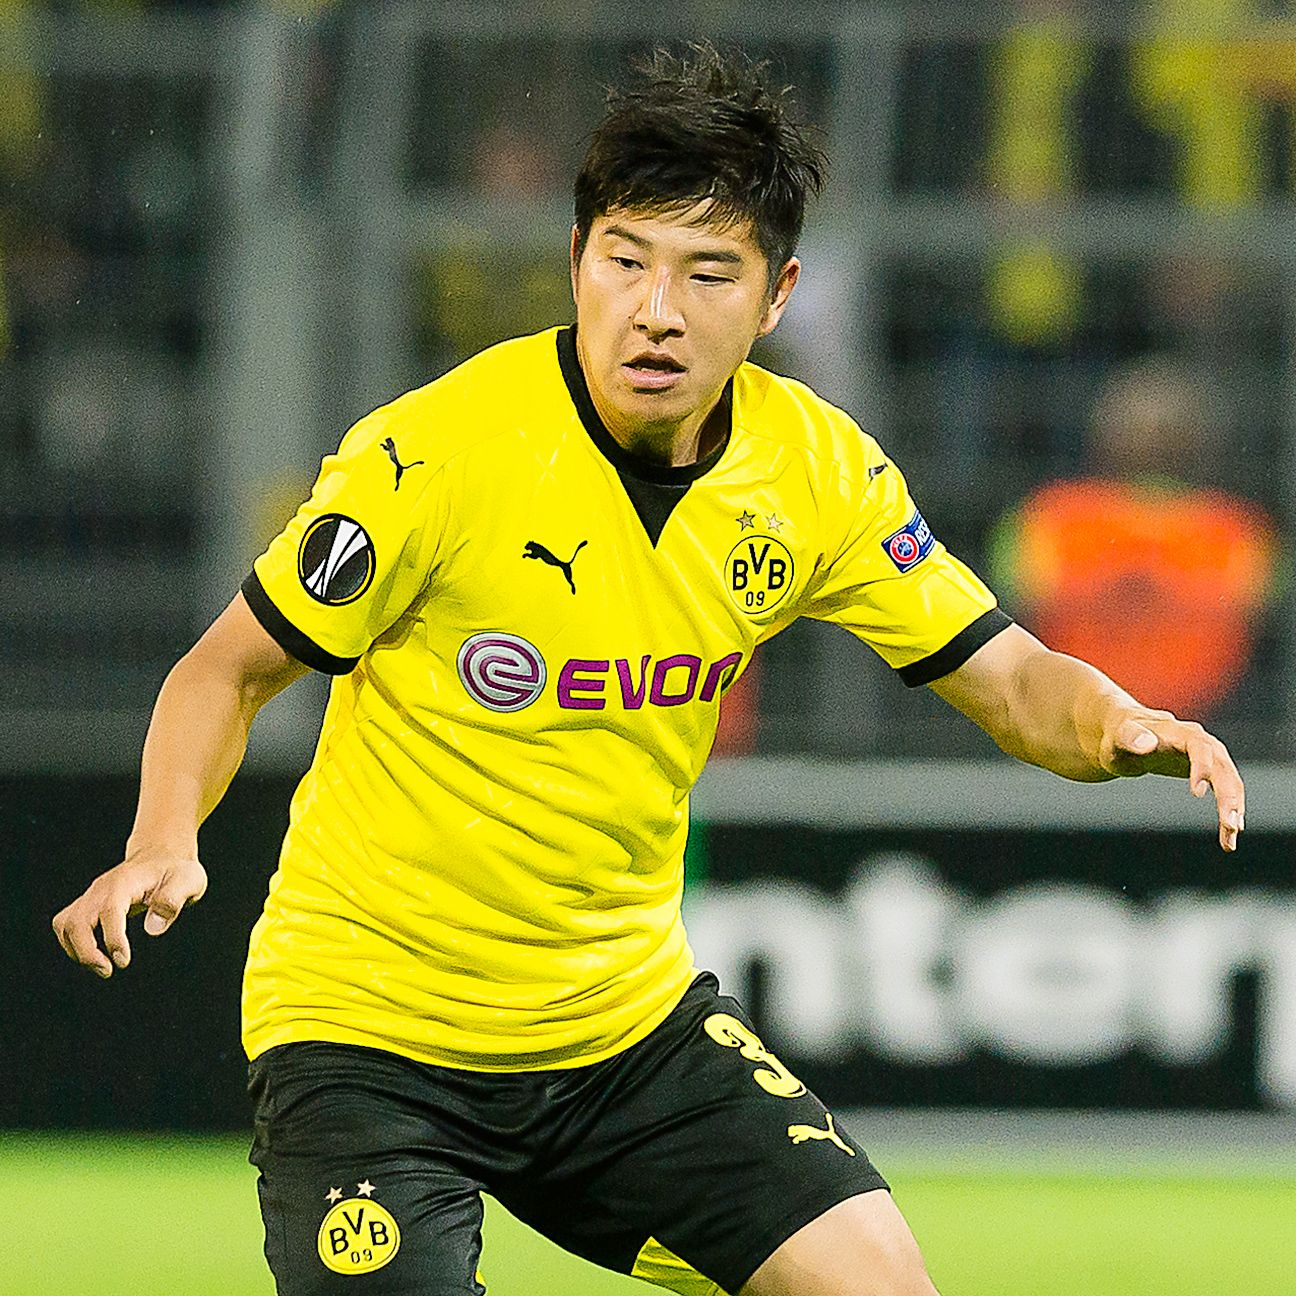 Park Joo-ho's Borussia Dortmund debut was a memorable one for the South Korean.